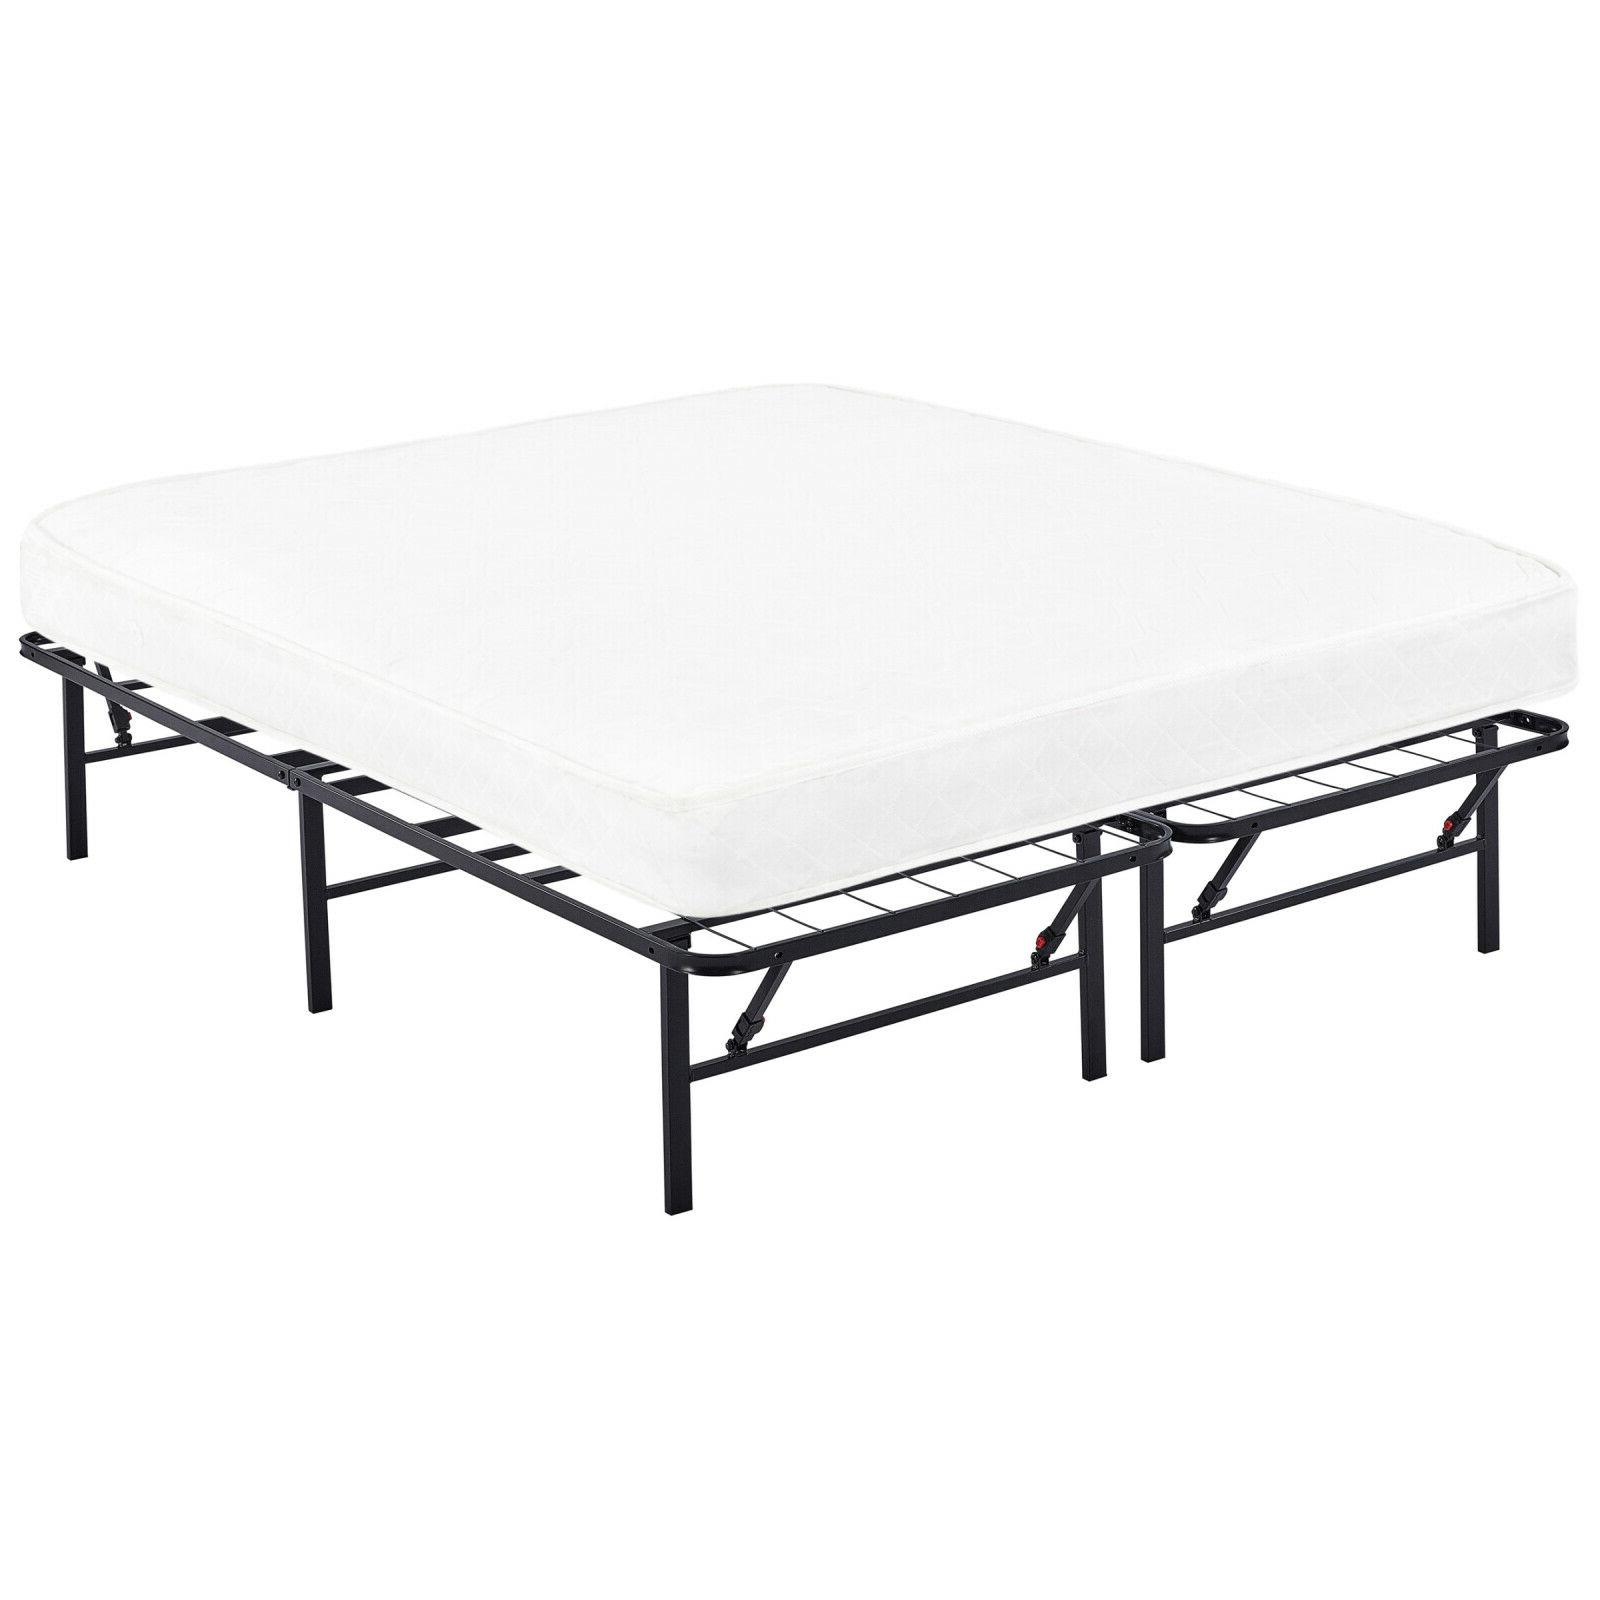 Folding Bed High